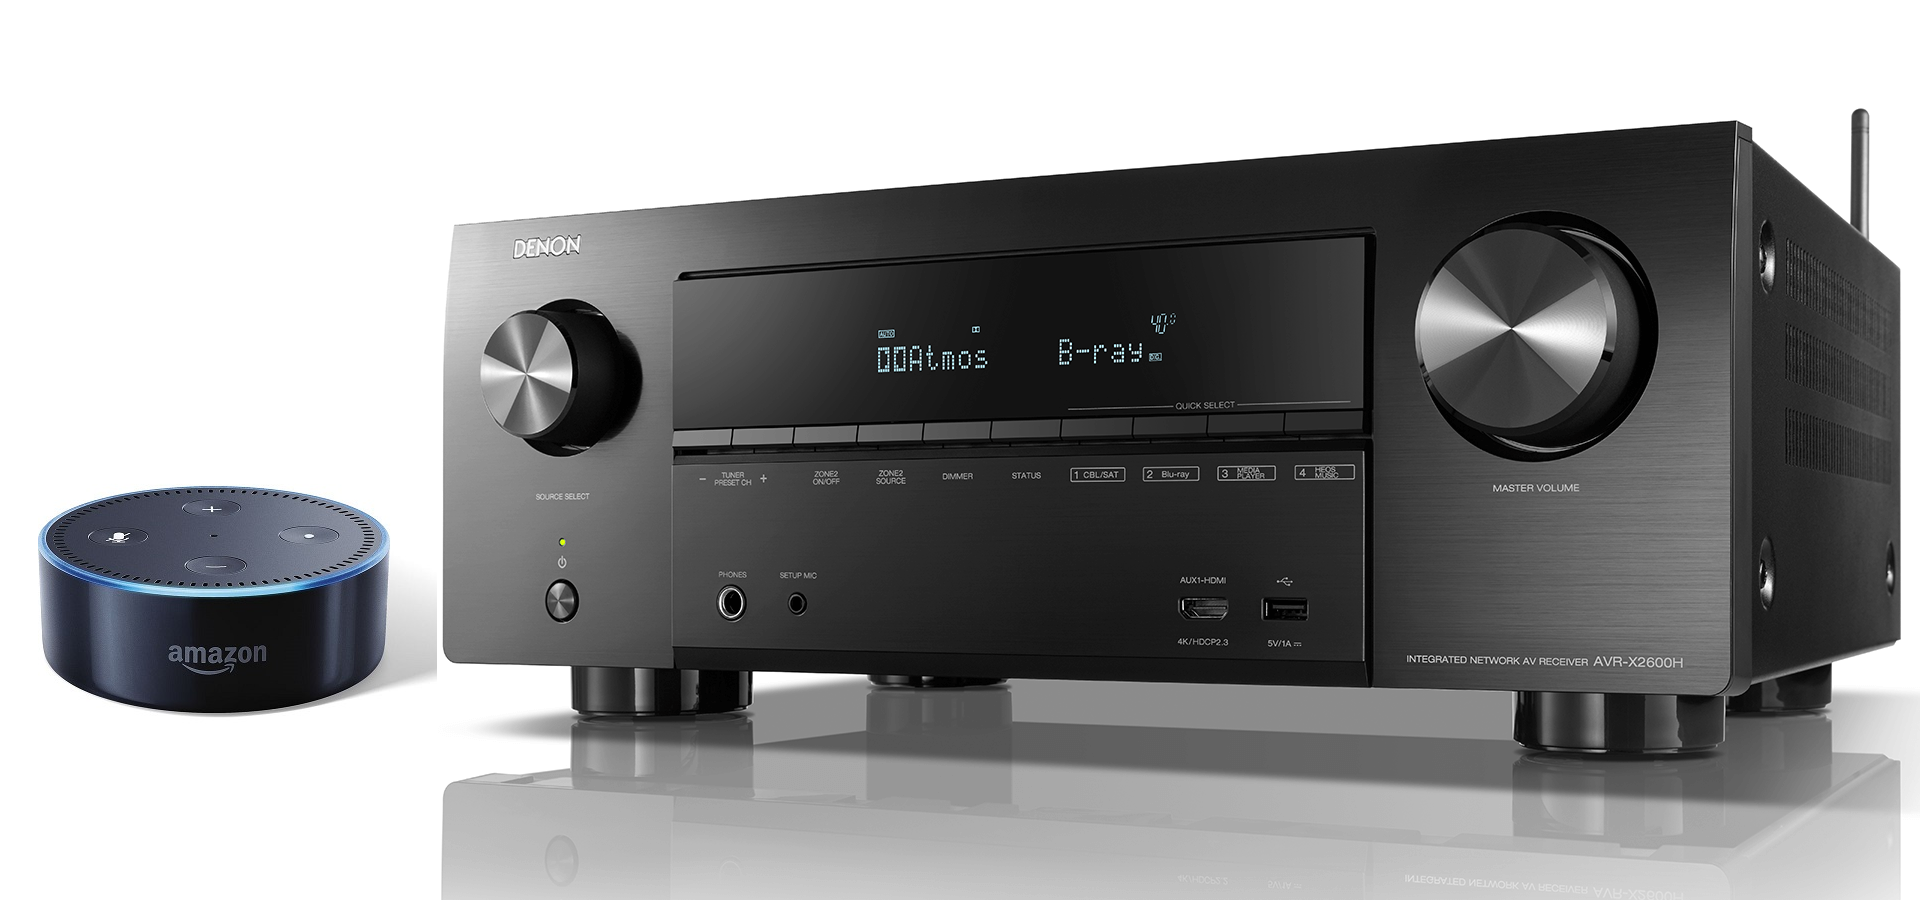 Ampli Denon AVR-X2600H | Anh Duy Audio